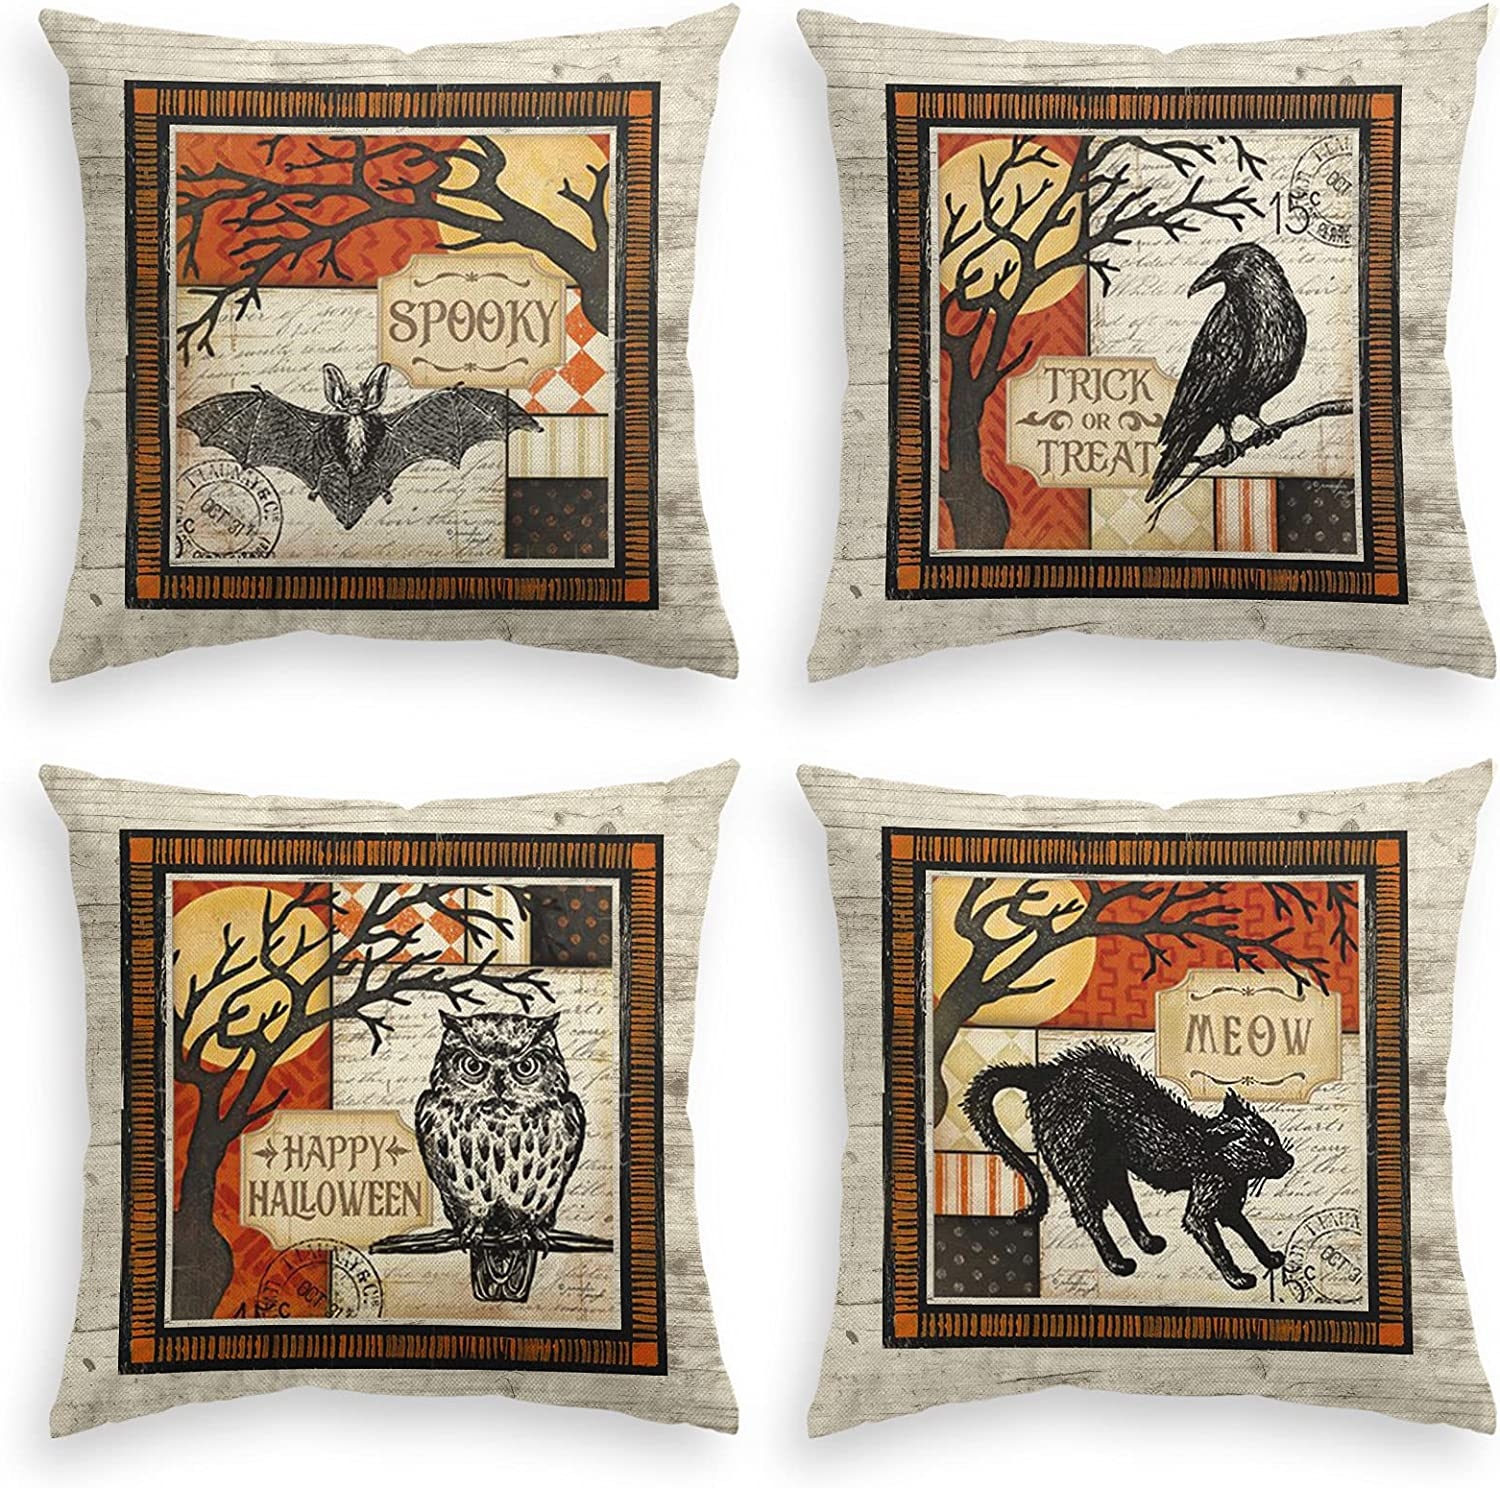 AVOIN colorlife Happy Halloween Spooky Trick or Treat Meow Throw Pillow Cover, 18 x 18 Inch Bat Raven Owl Cat Cushion Case for Sofa Couch Set of 4